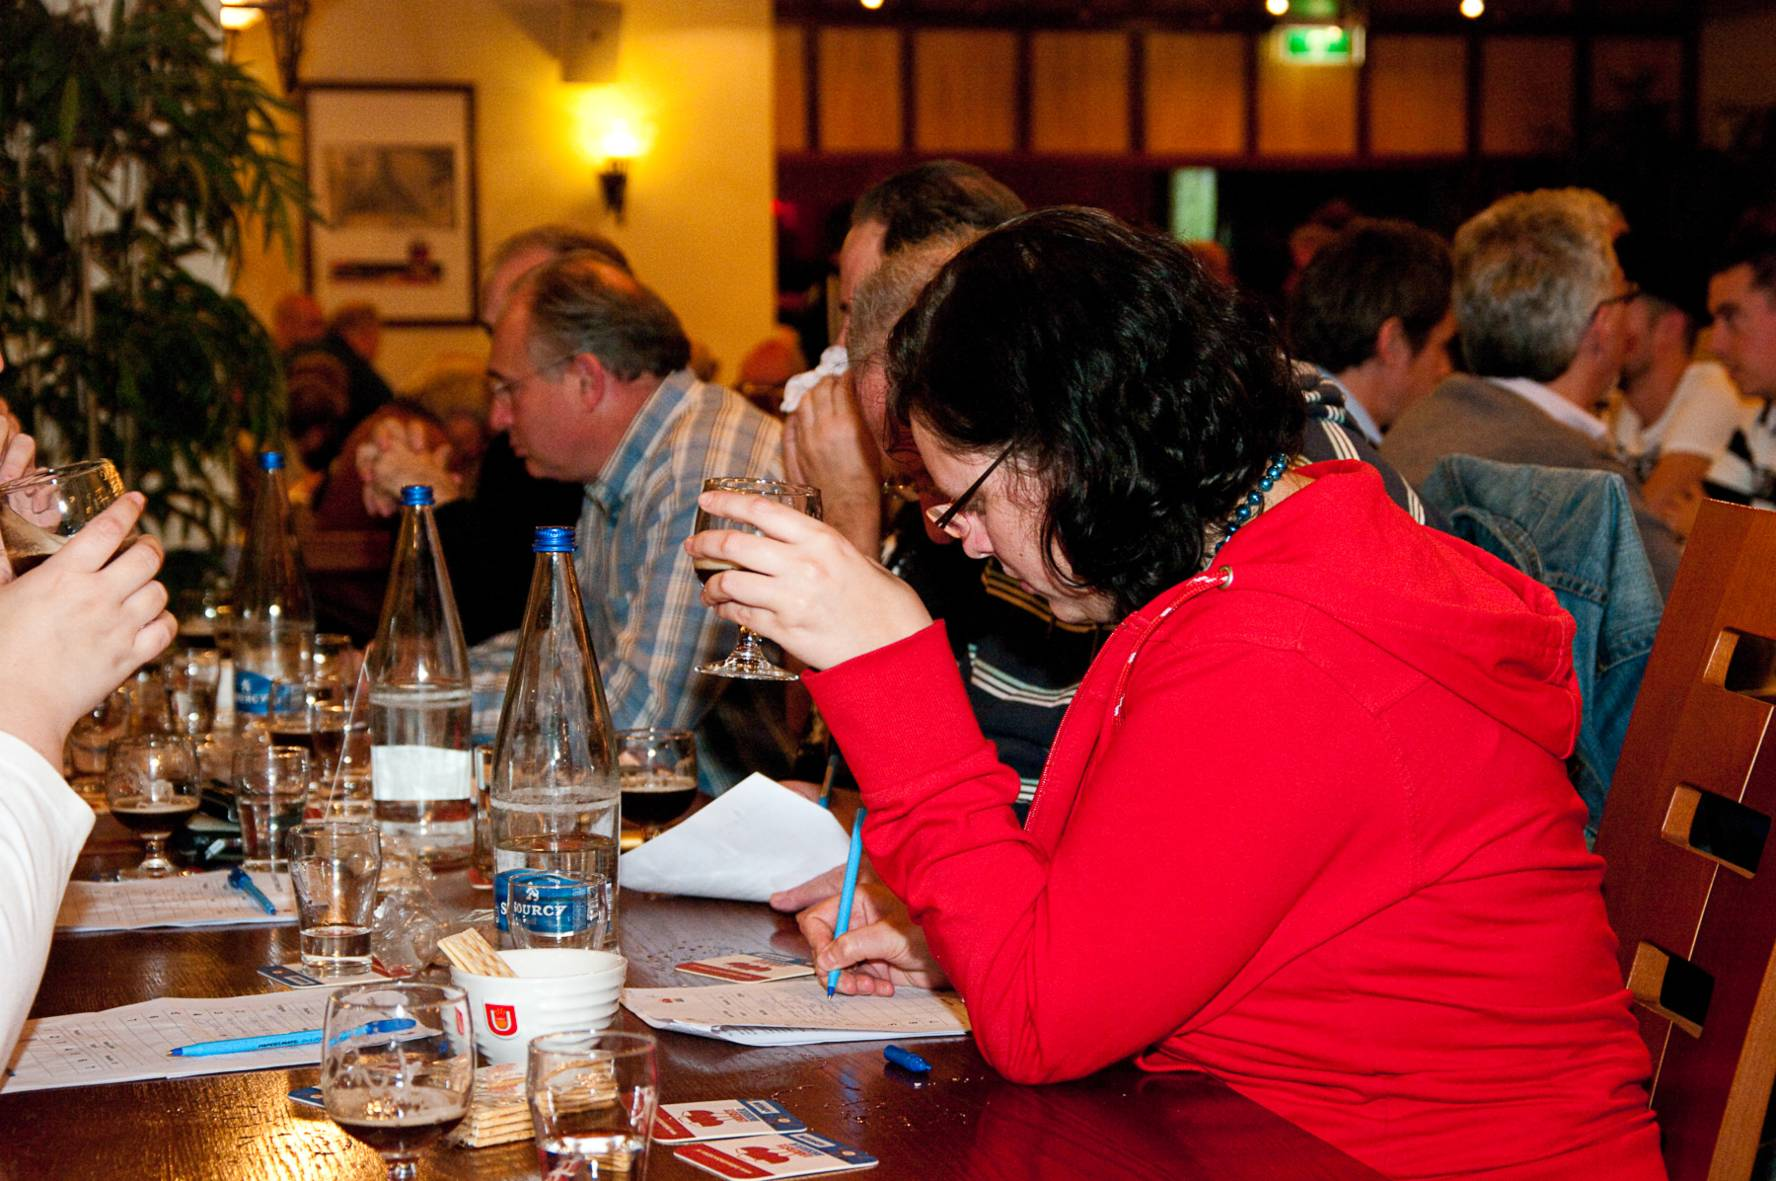 LekkersteBockBier2010 (106 of 172)